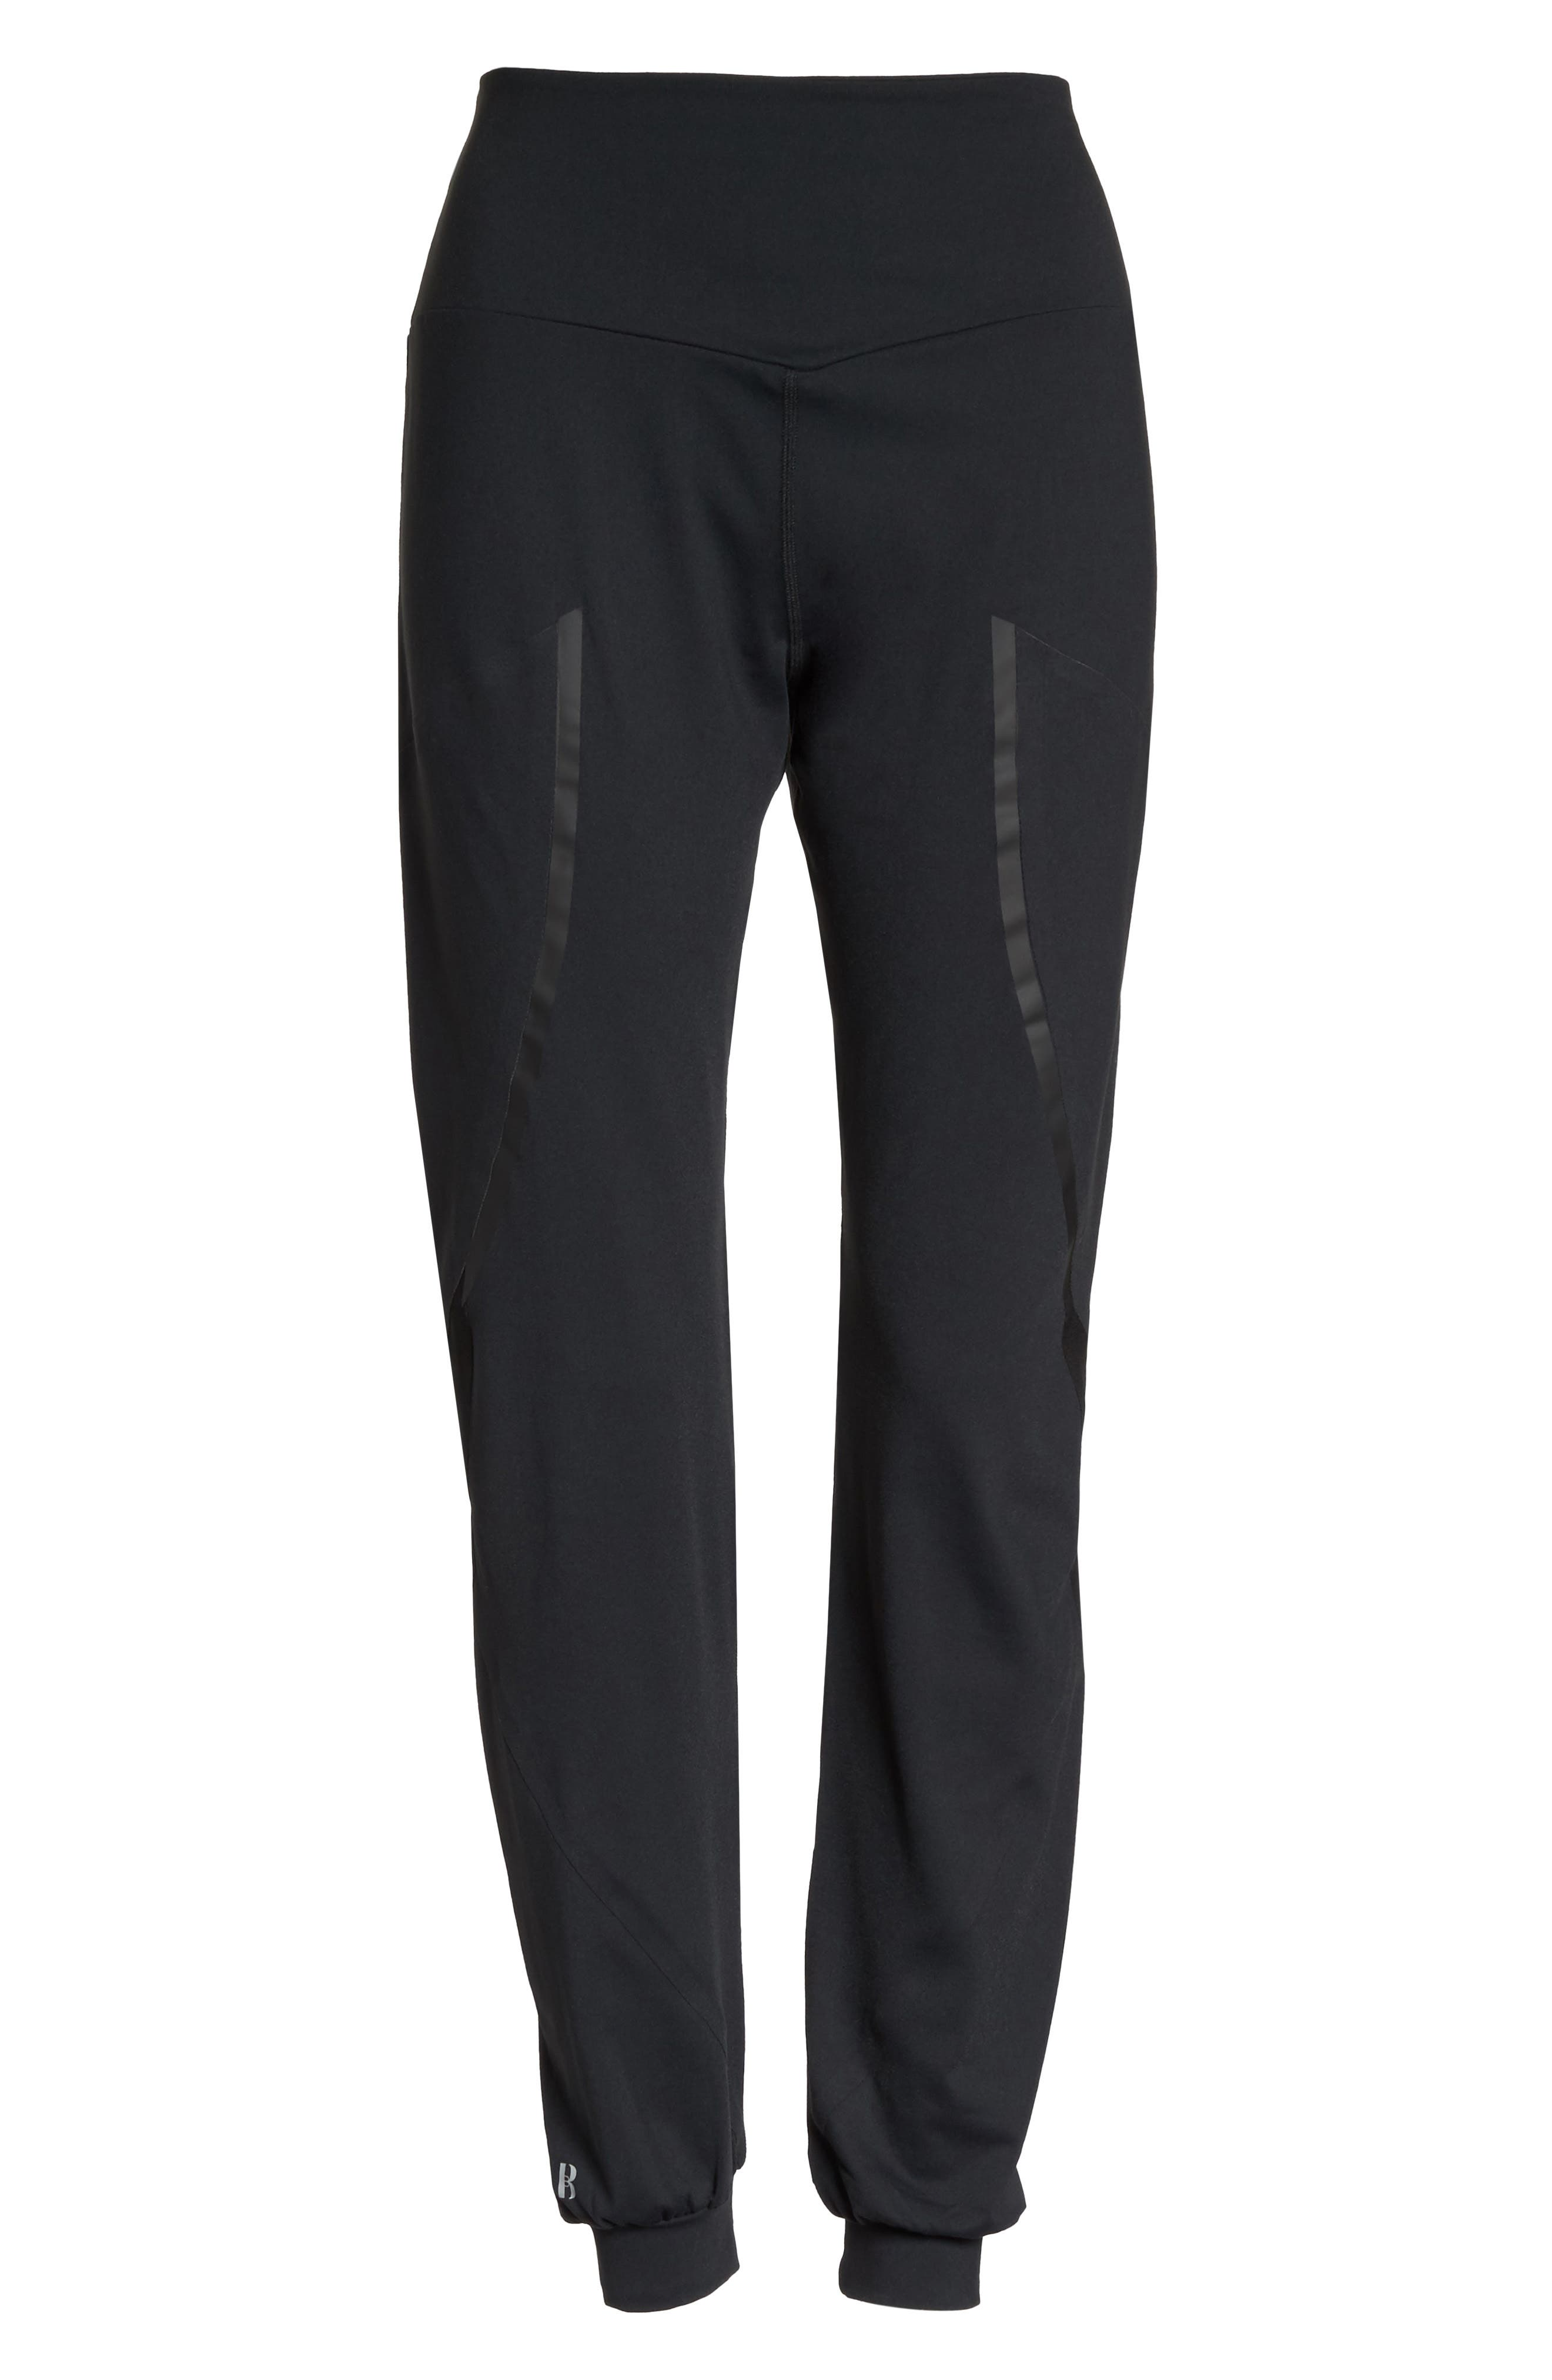 BoomBoom Athletica Track Pants,                             Alternate thumbnail 7, color,                             BLACK